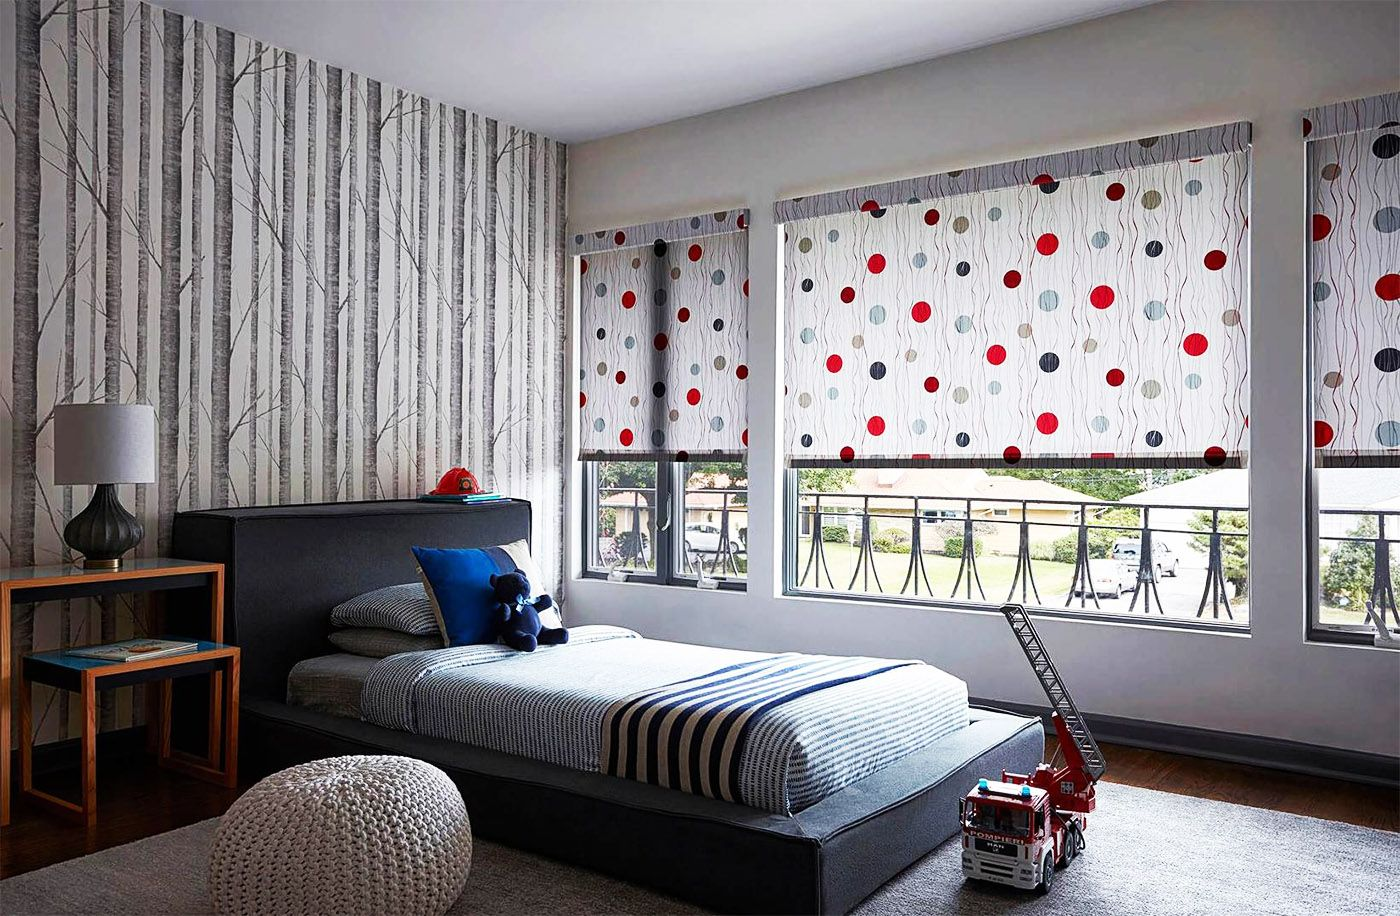 Best Home Decoration Design Ideas For You In 2020 Bedroom Decor Window Roller Shades Curtain Designs